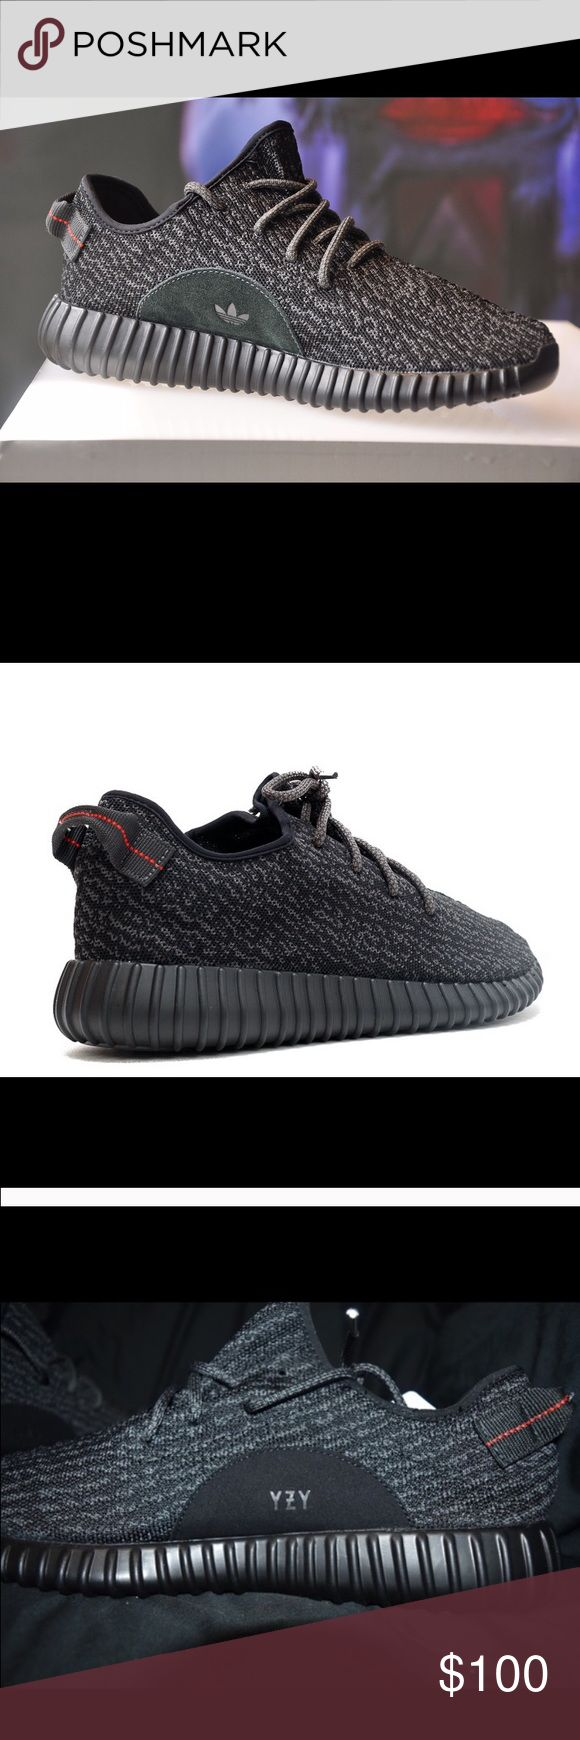 Yeezy boost 350 Original yeezy boost , black worn twice , that's why the price is what it is. Great condition as in pictures Yeezy Shoes Athletic Shoes